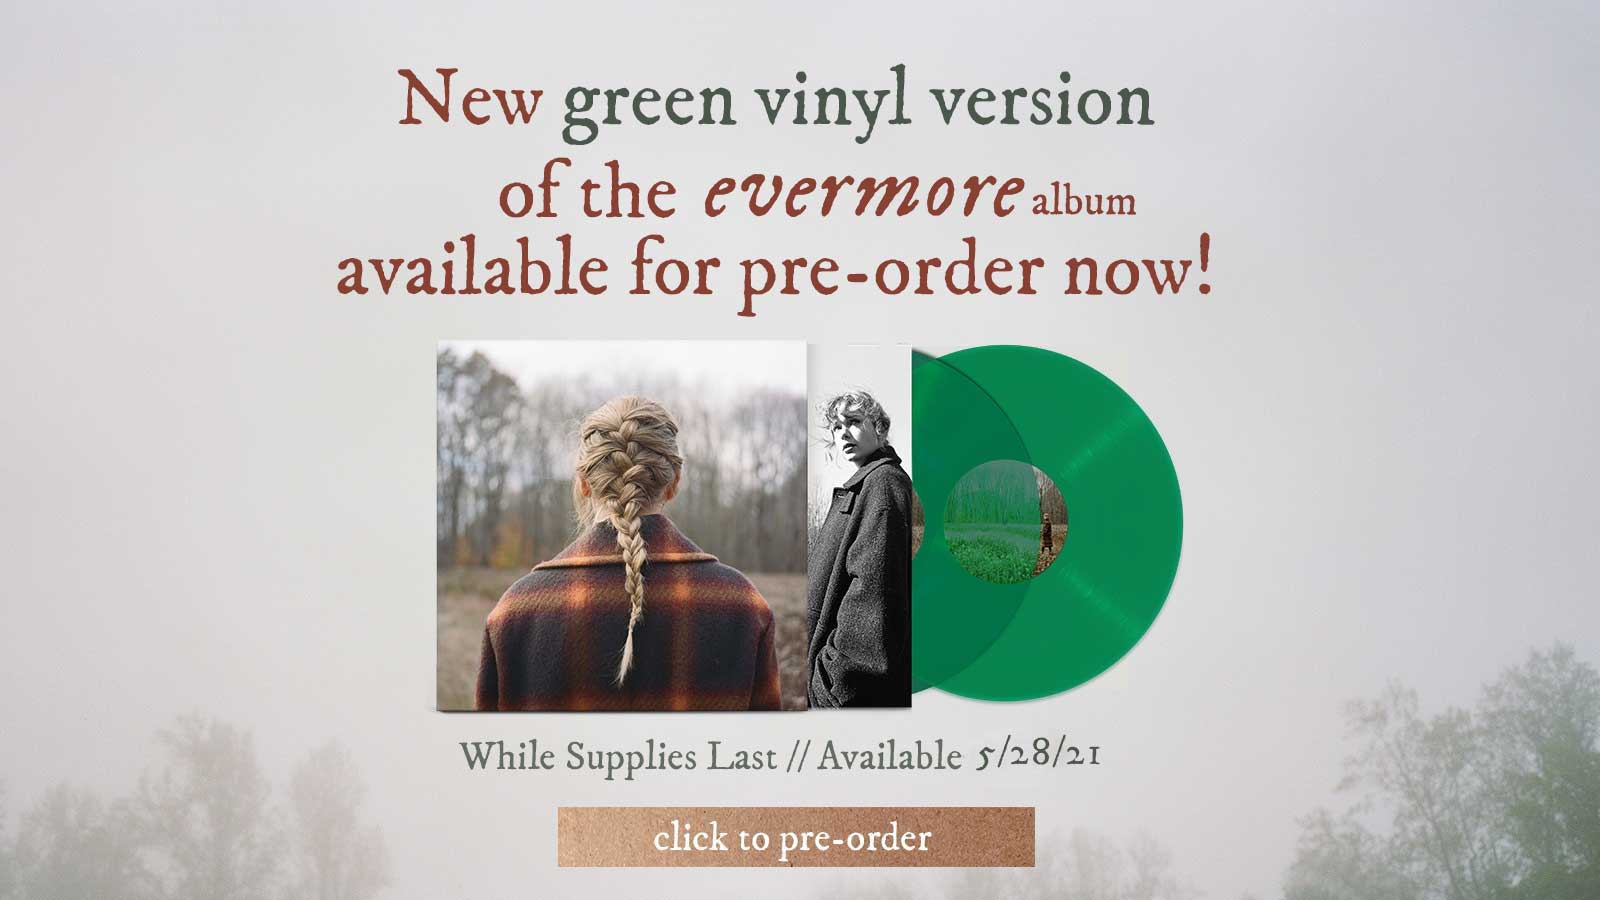 New green vinyl version of the evermore album available for pre-order now! While supplies last // Available 5/28/21